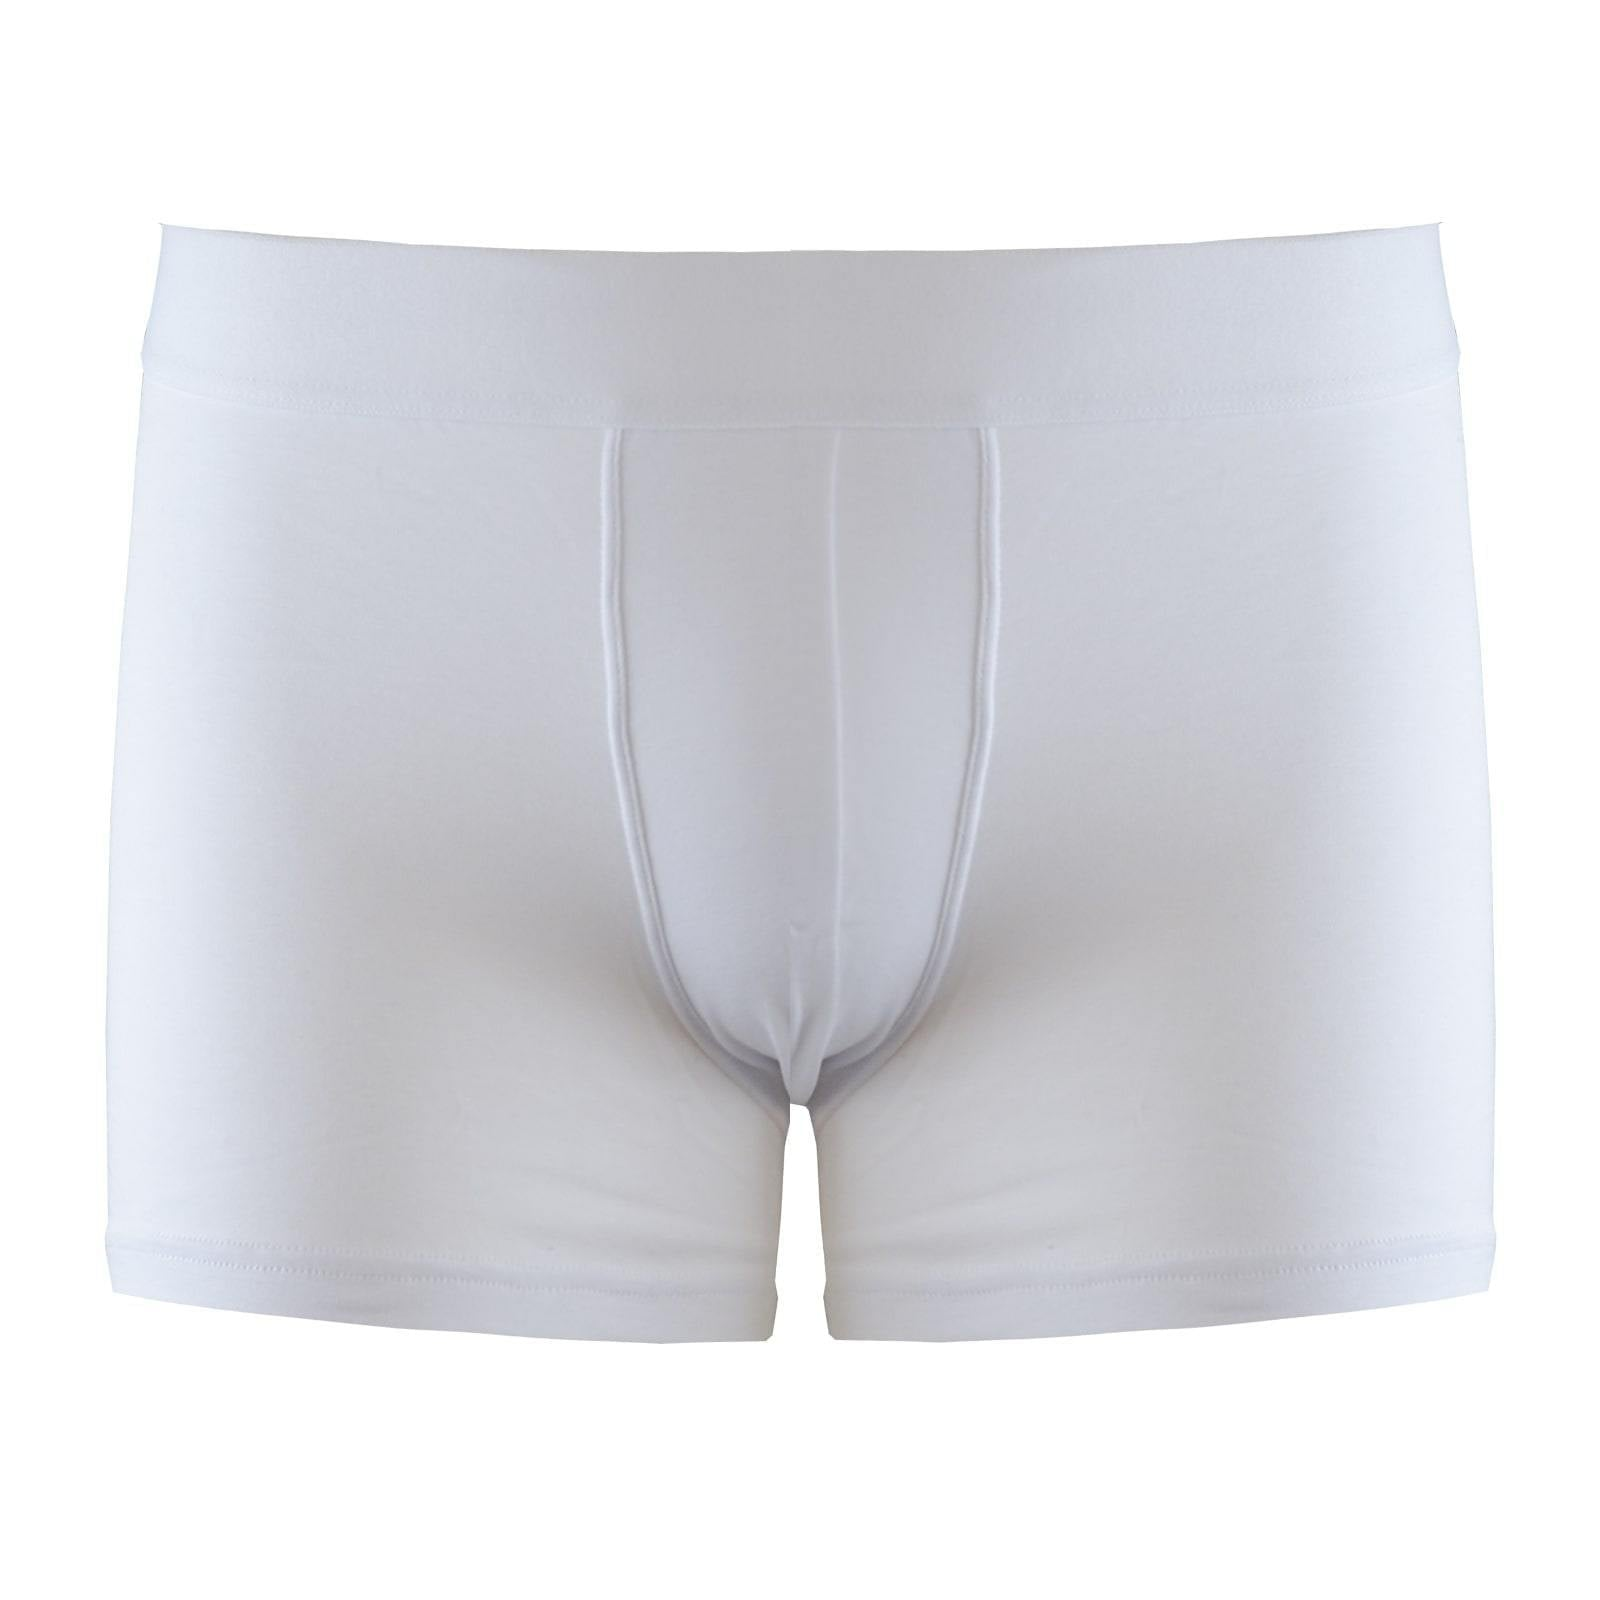 3bad4991b 3 Total White Boxer Briefs Pack - kloters